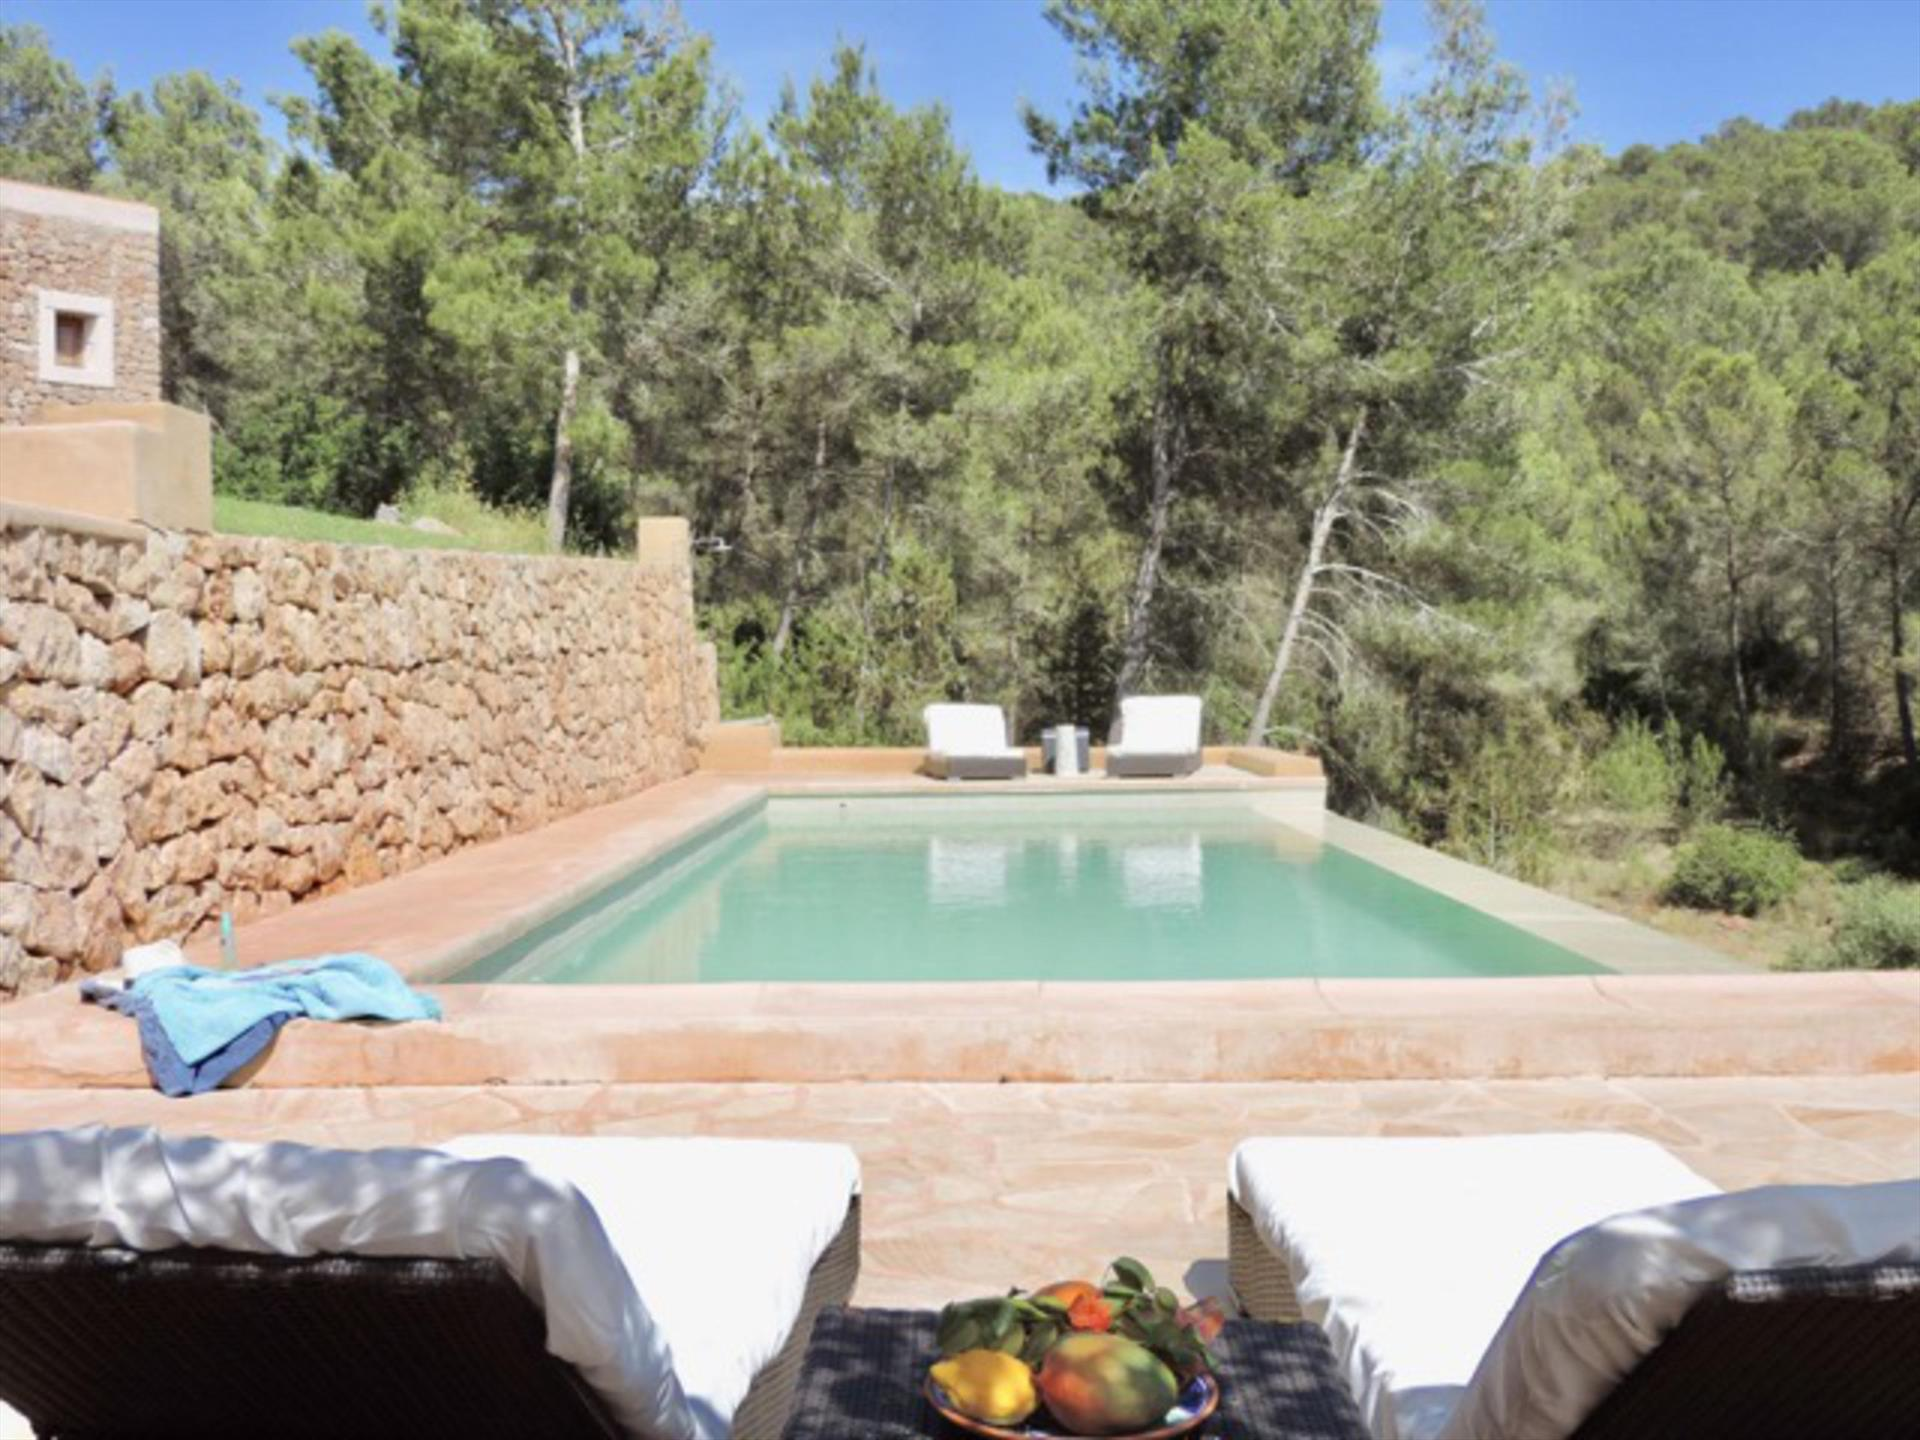 Ram, Rustic and comfortable villa  with private pool in Santa Gertrudis, Ibiza, Spain for 8 persons...